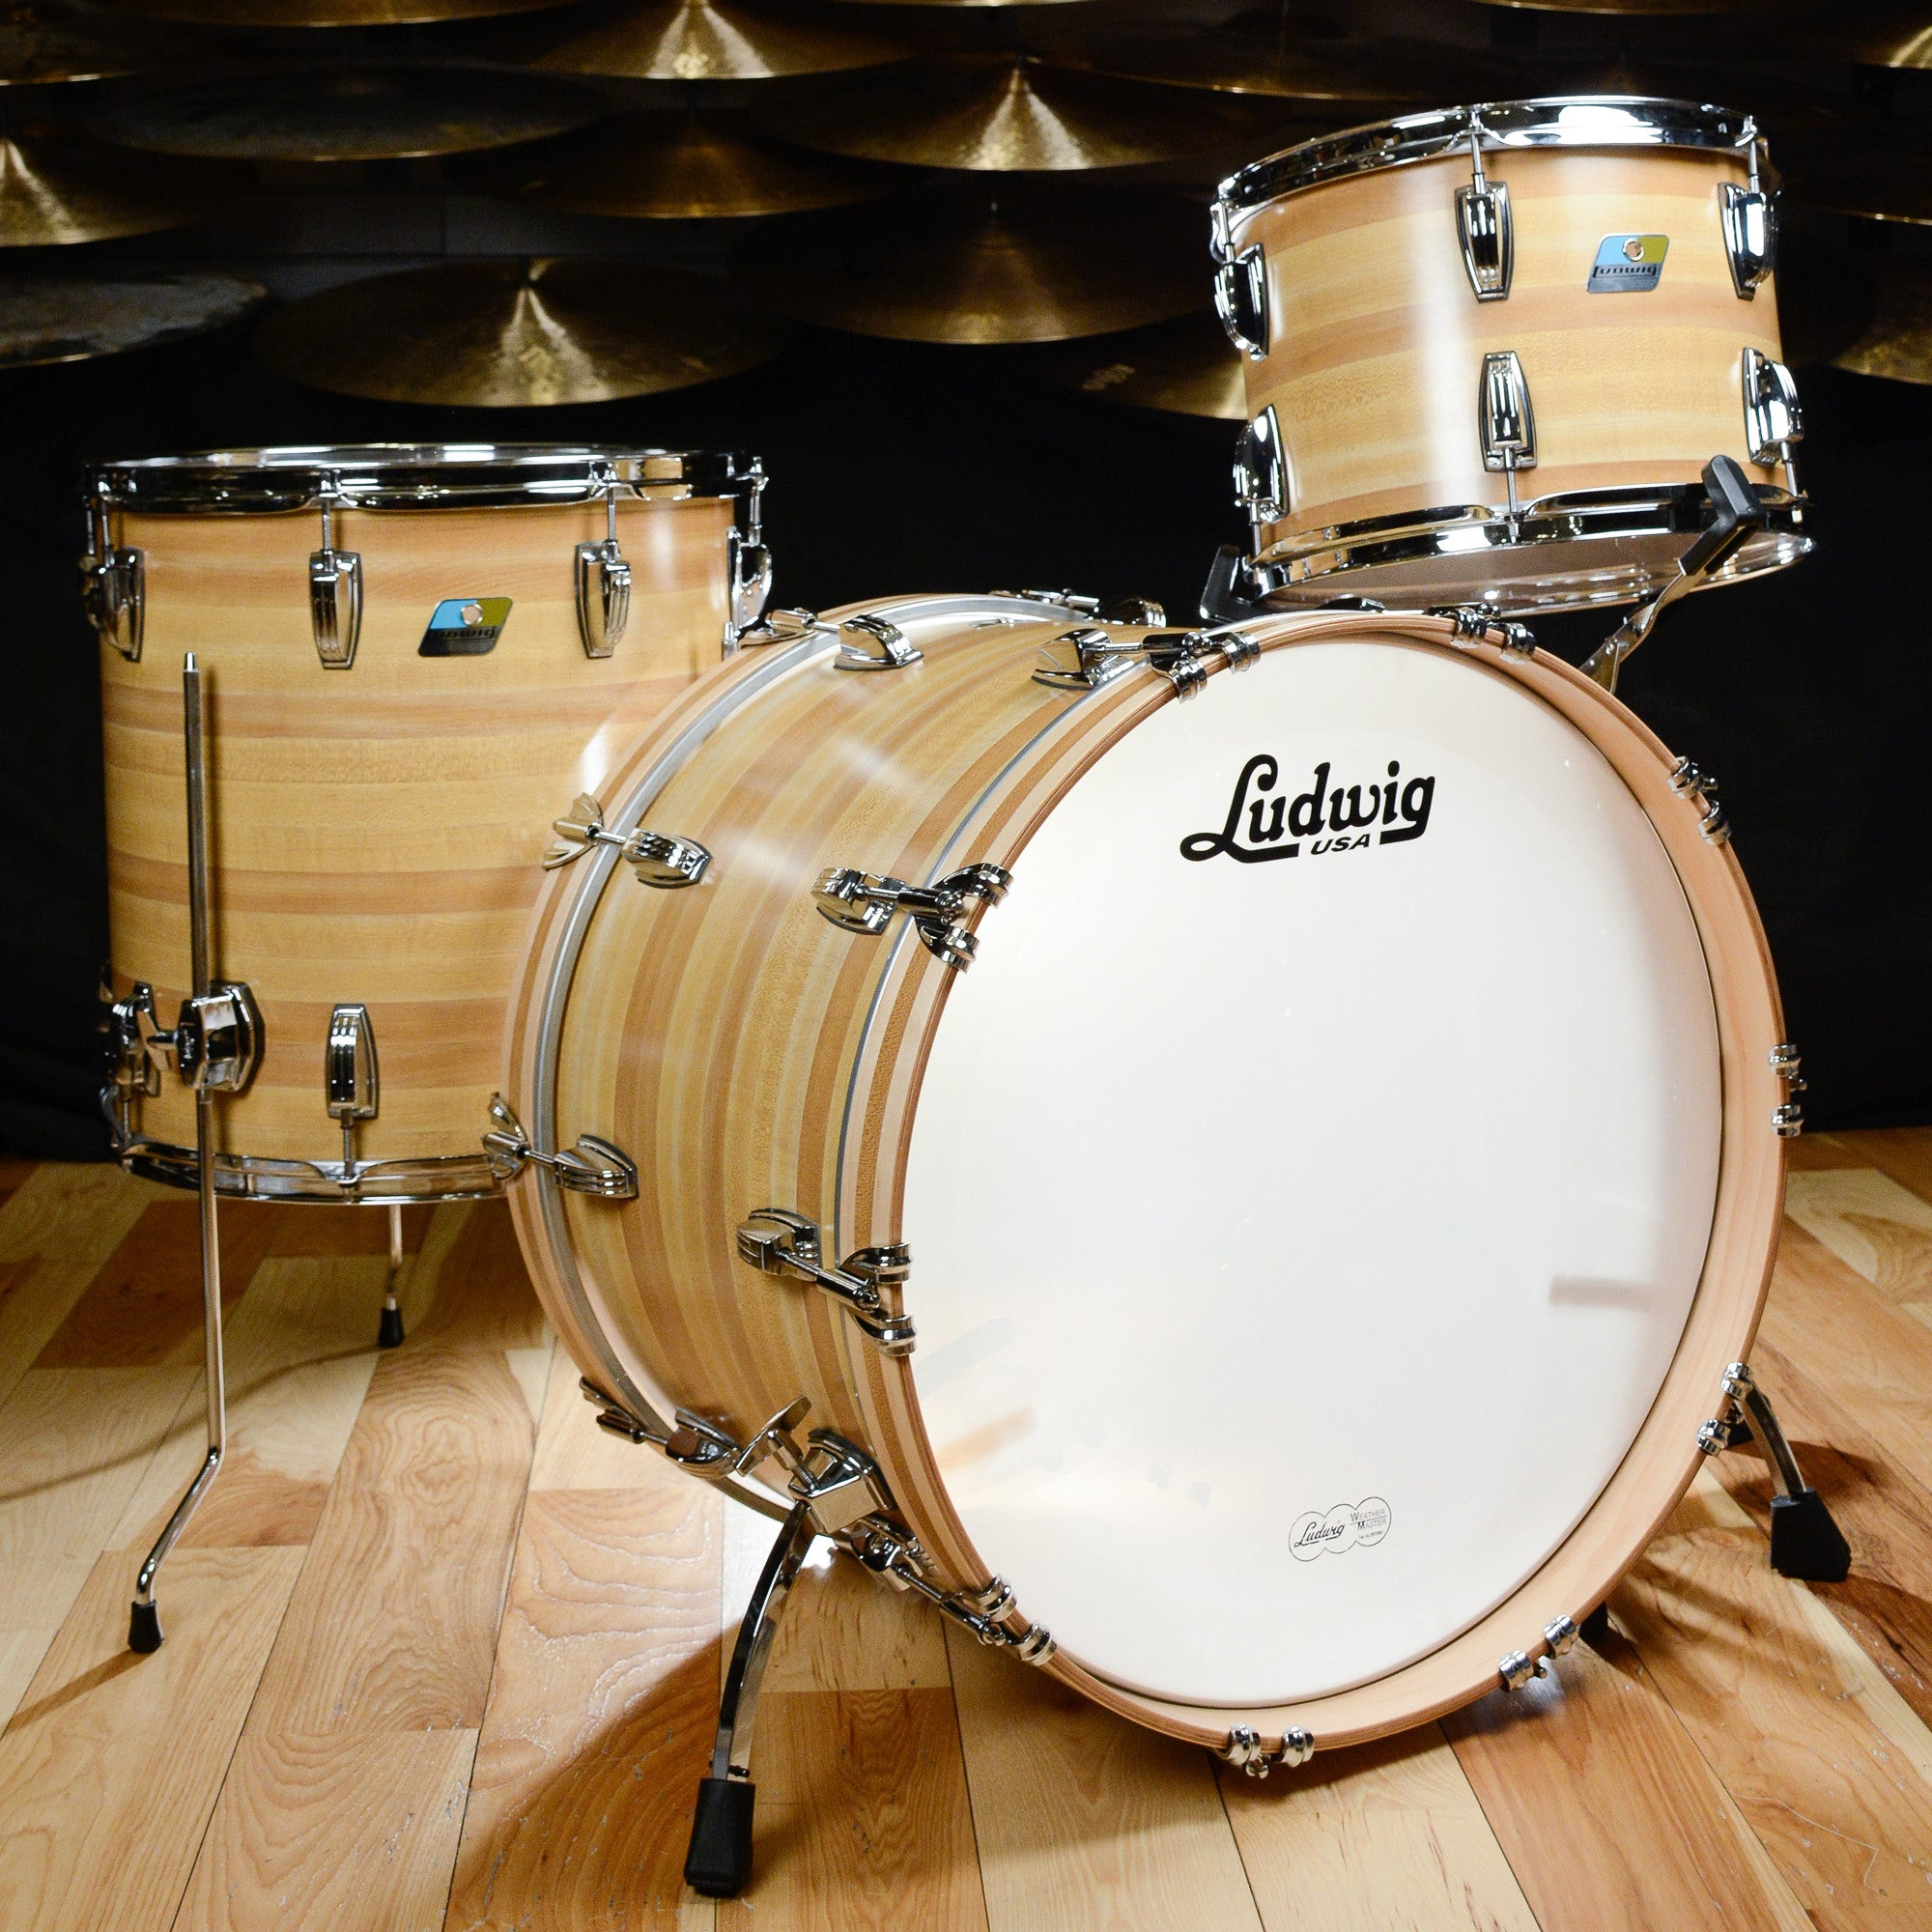 Ludwig classic maple 13 16 22 3pc drum kit butcher block for Classic house drums